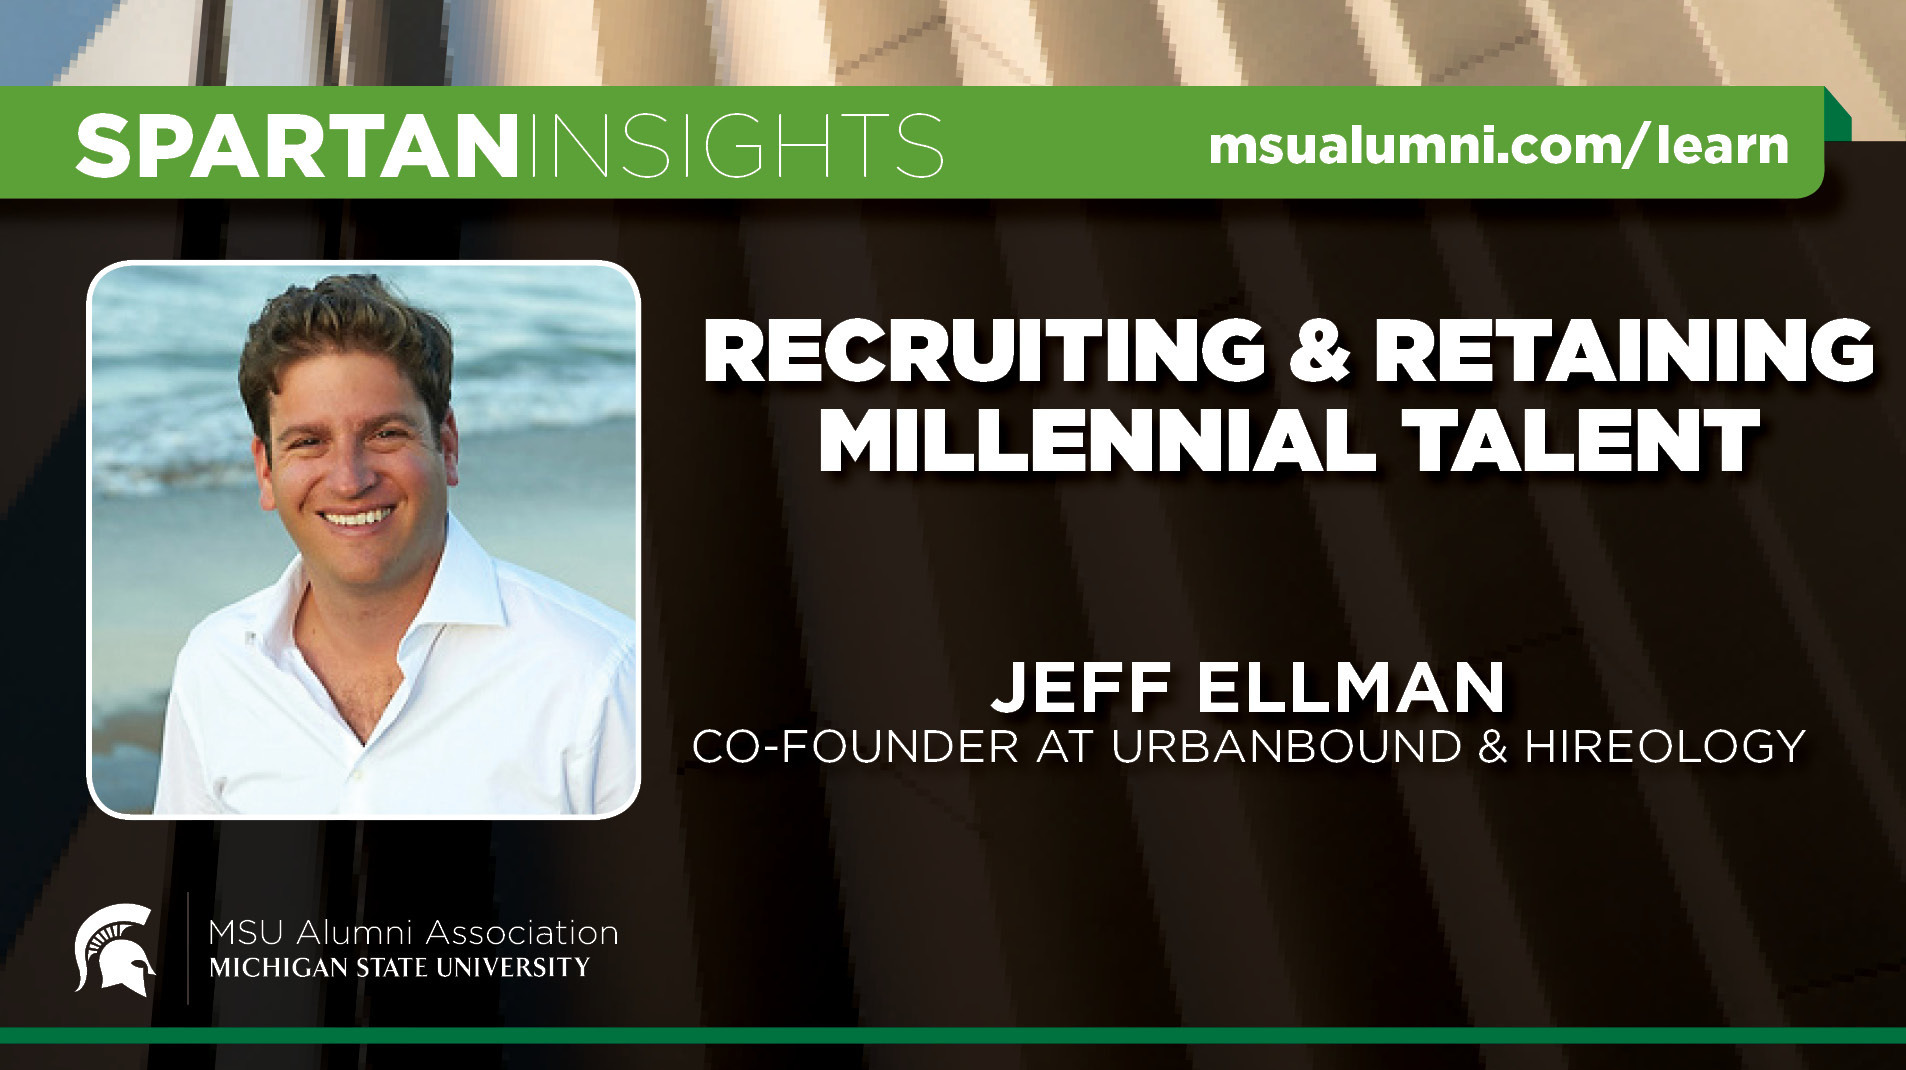 webinar cover image for Jeff Ellman | Recruiting & Retaining Millennial Talent